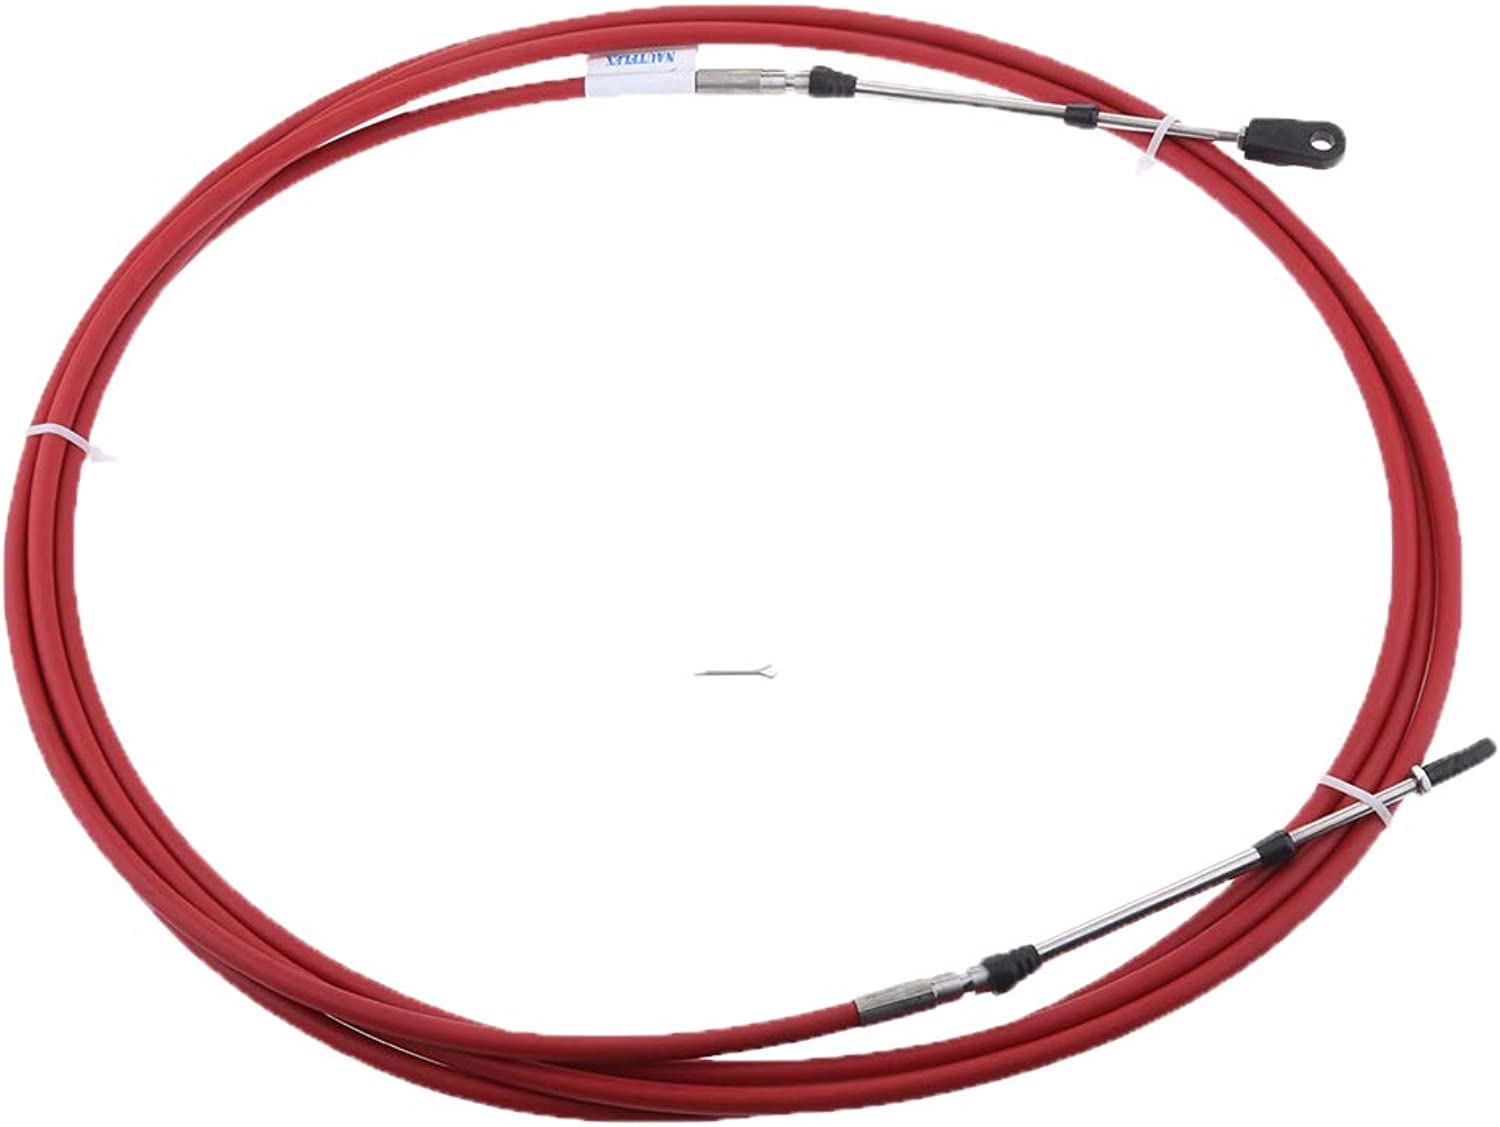 MagiDeal Universal Thredtle Cable Red for Marine Boat Motor Outboard Control Lever